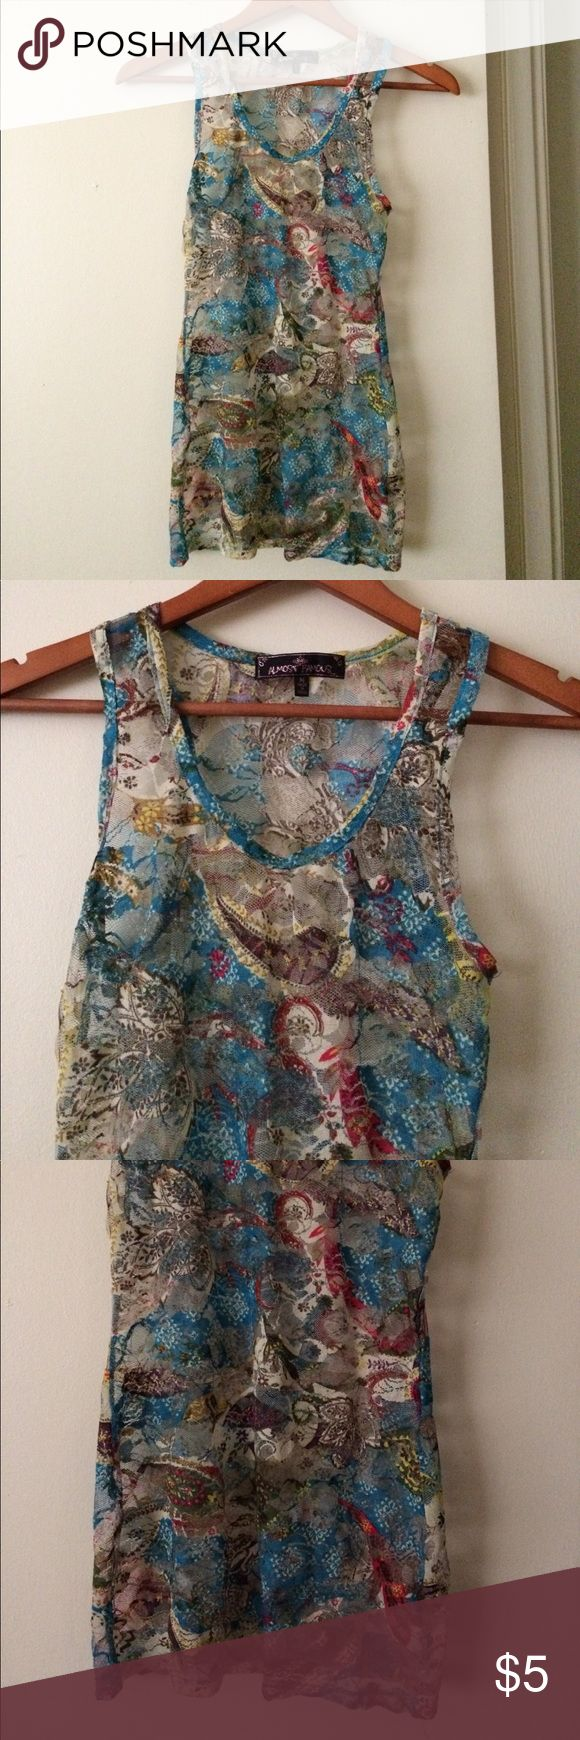 Almost Famous Brand See Through Top Size Medium Almost Famous Brand See Through Tank Top Size Medium! Very cute and great for summer! Almost Famous Tops